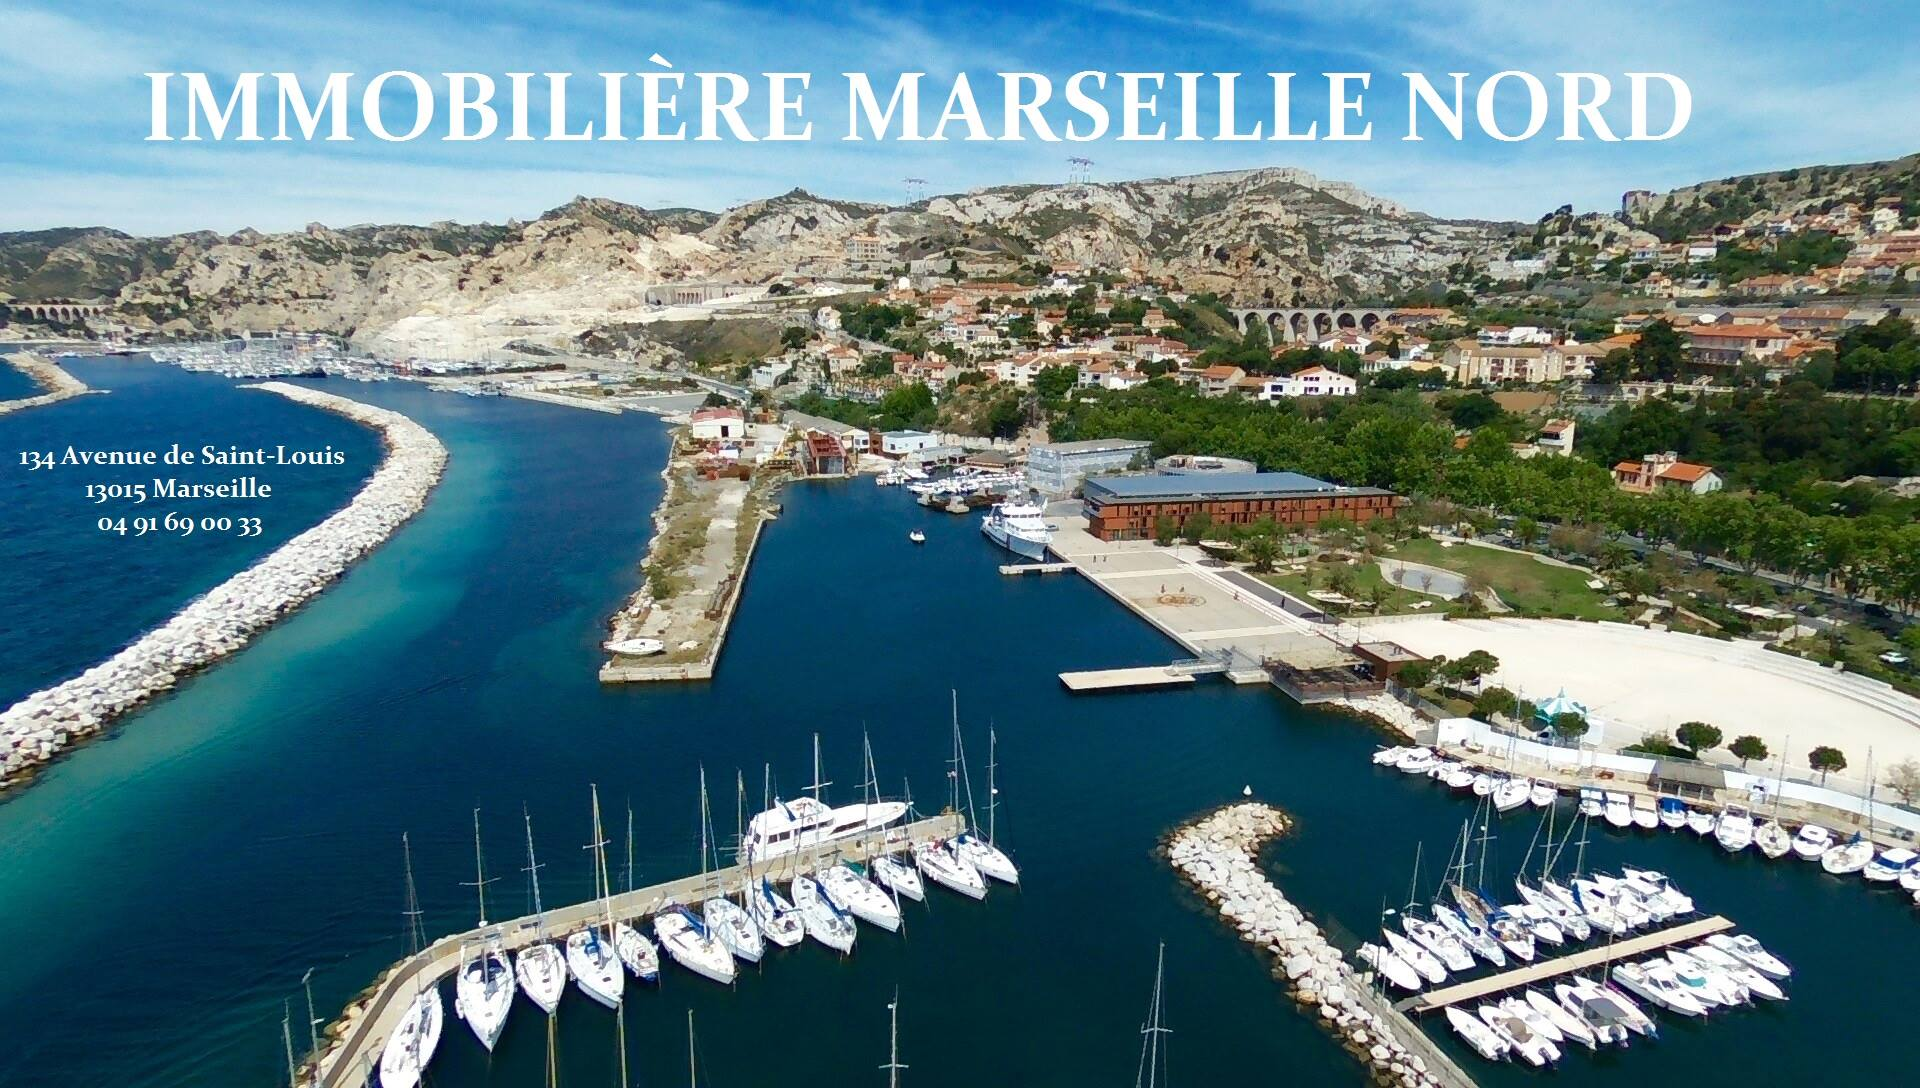 IMMOBILIERE MARSEILLE NORD